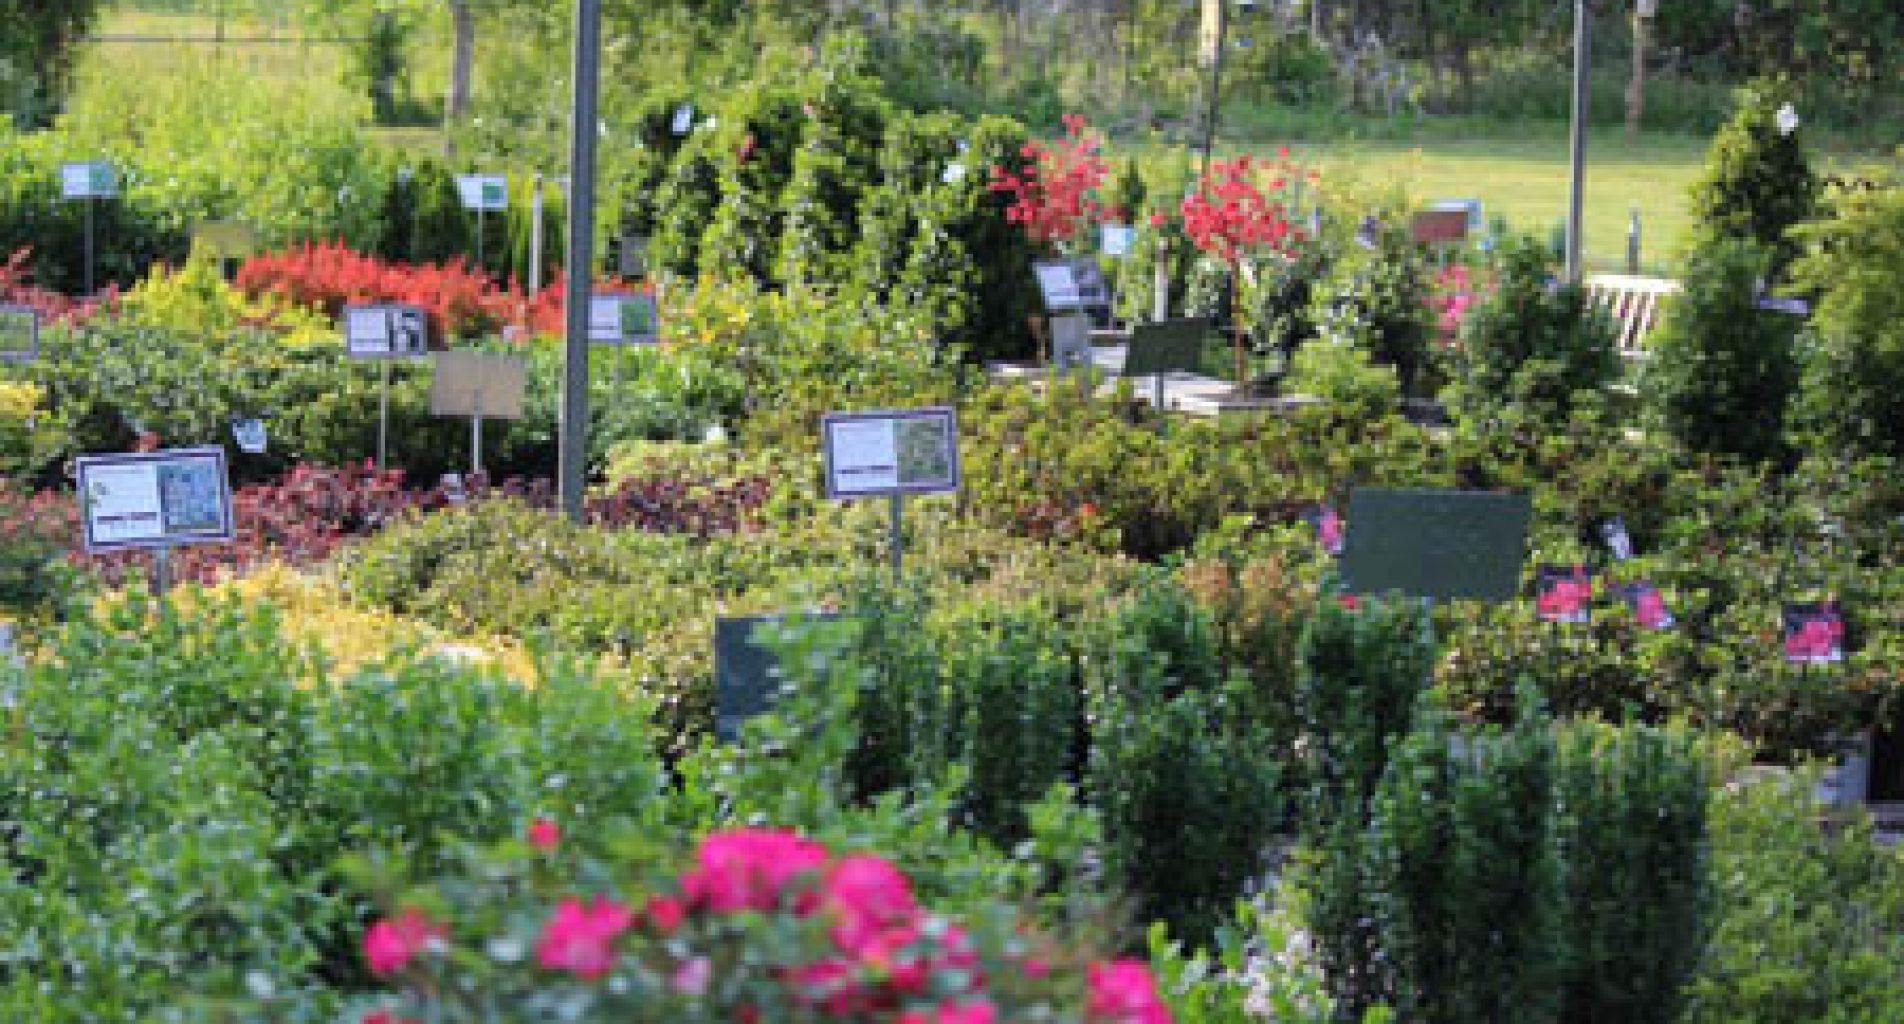 Roses, trees and shrubs for sale at Homestead Garden Center, Williamsburg